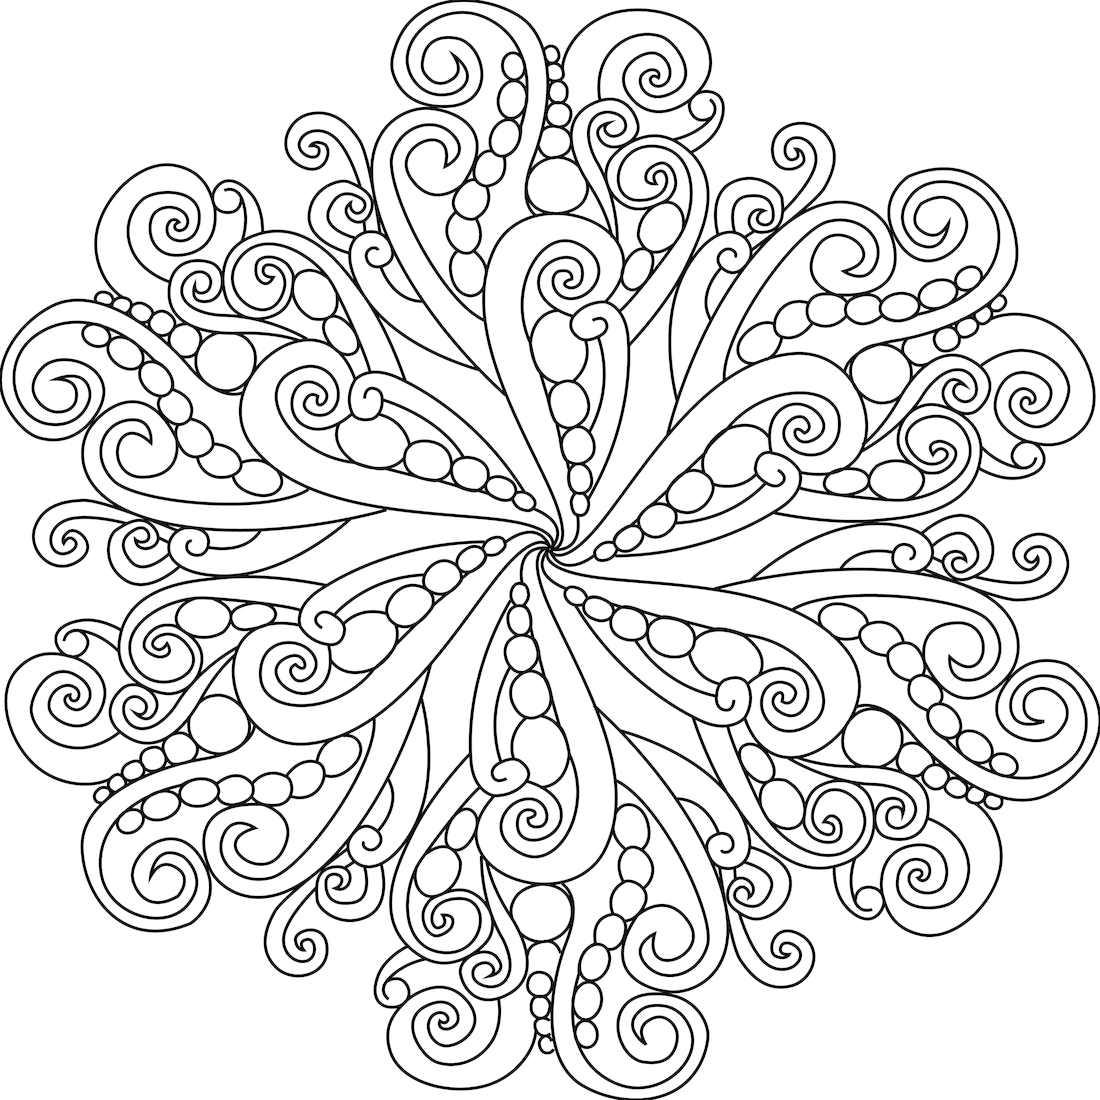 Girly Mandala PNG - 164624